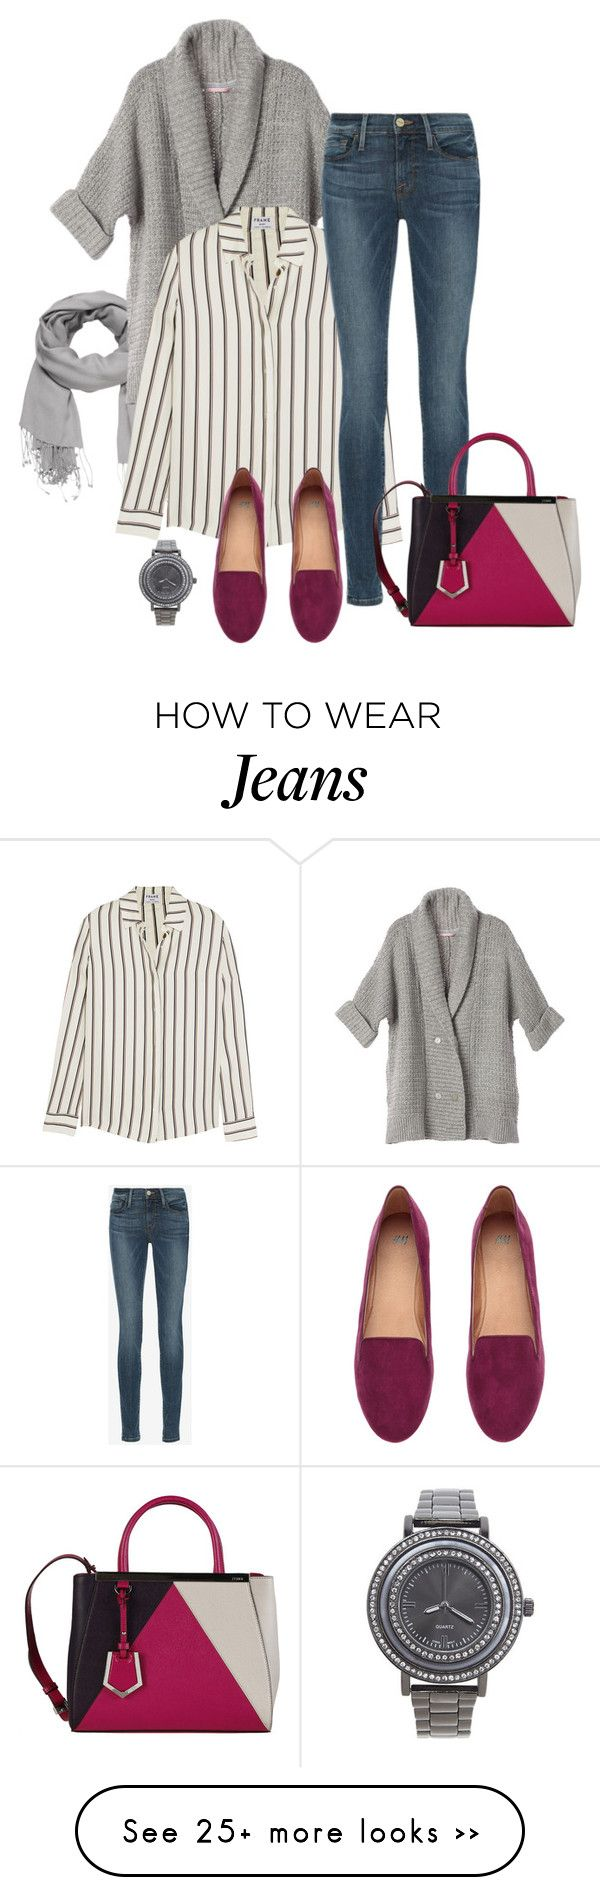 """Skinny Jeans & Loafers"" by eva-kouliaridou on Polyvore featuring maurices, Frame Denim, H&M, Fendi and Lane Bryant"